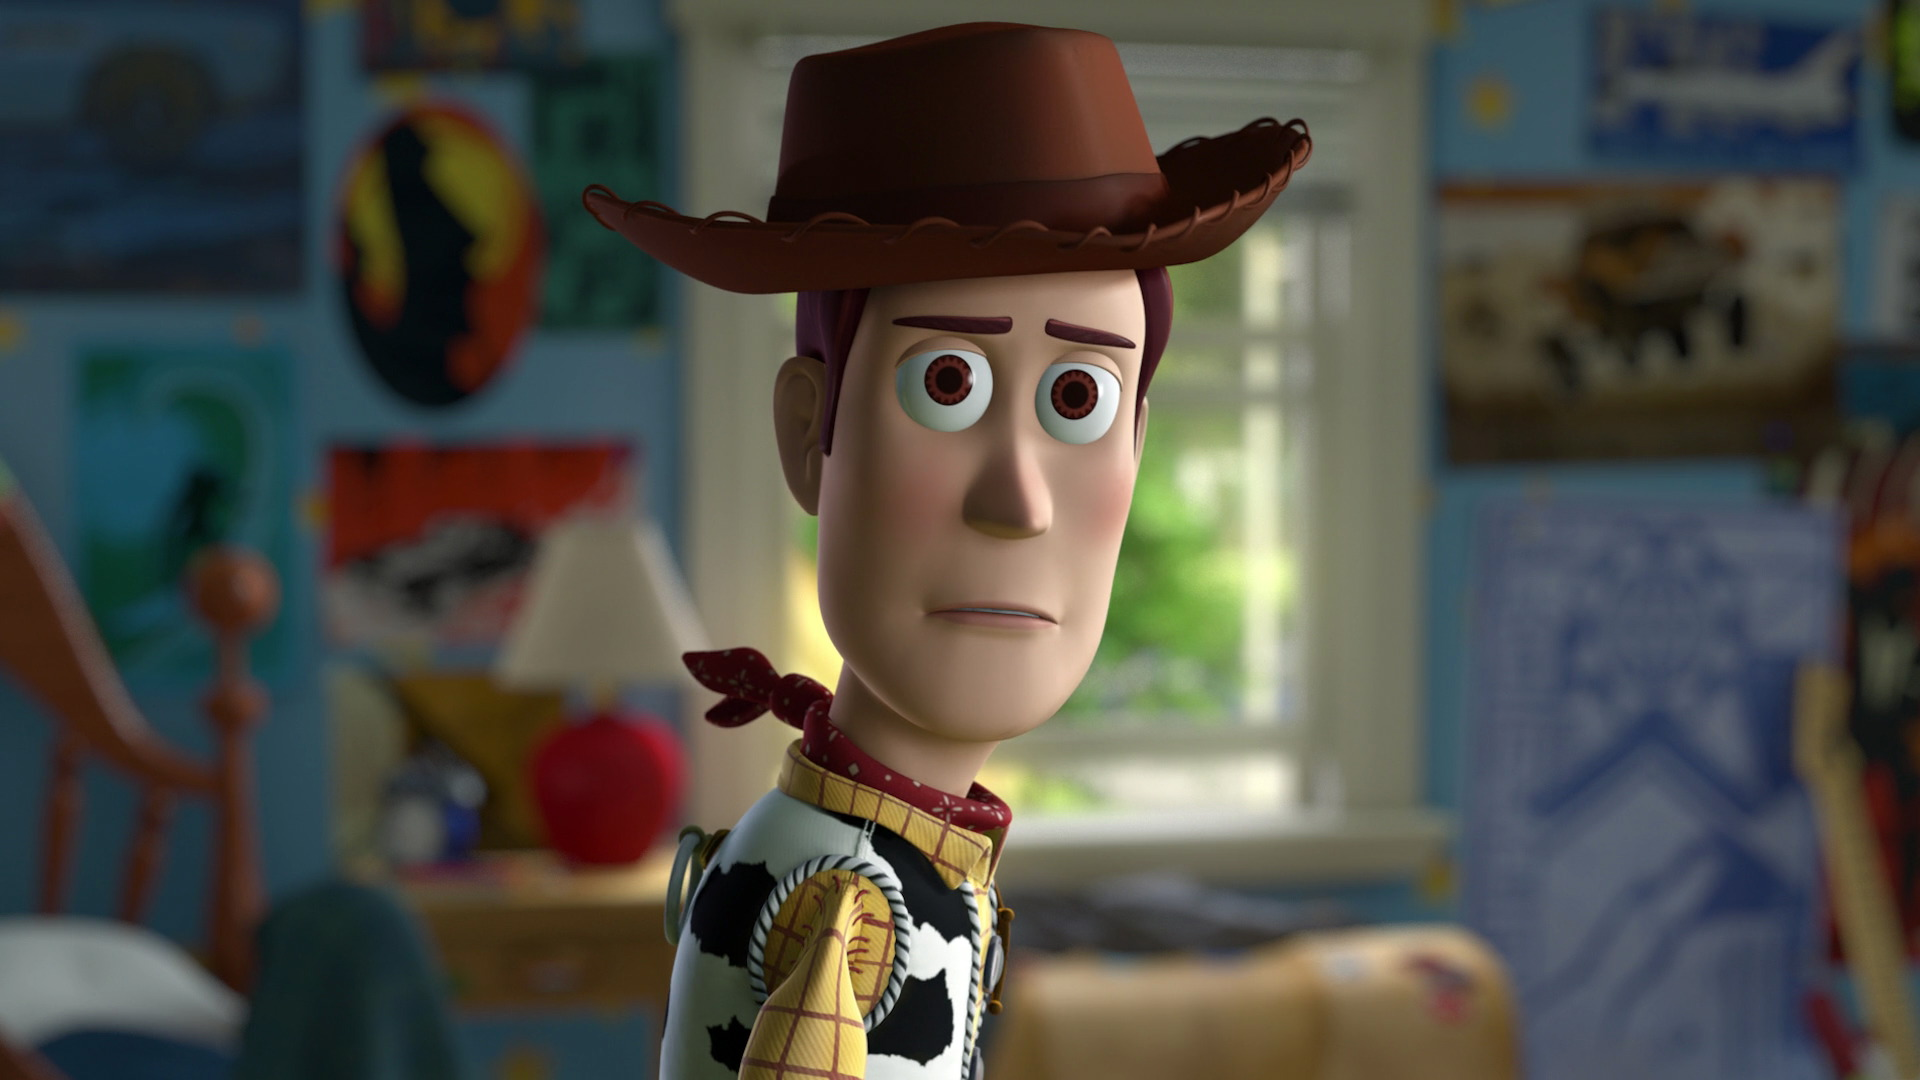 woody personnage dans �toy story� pixarplanetfr